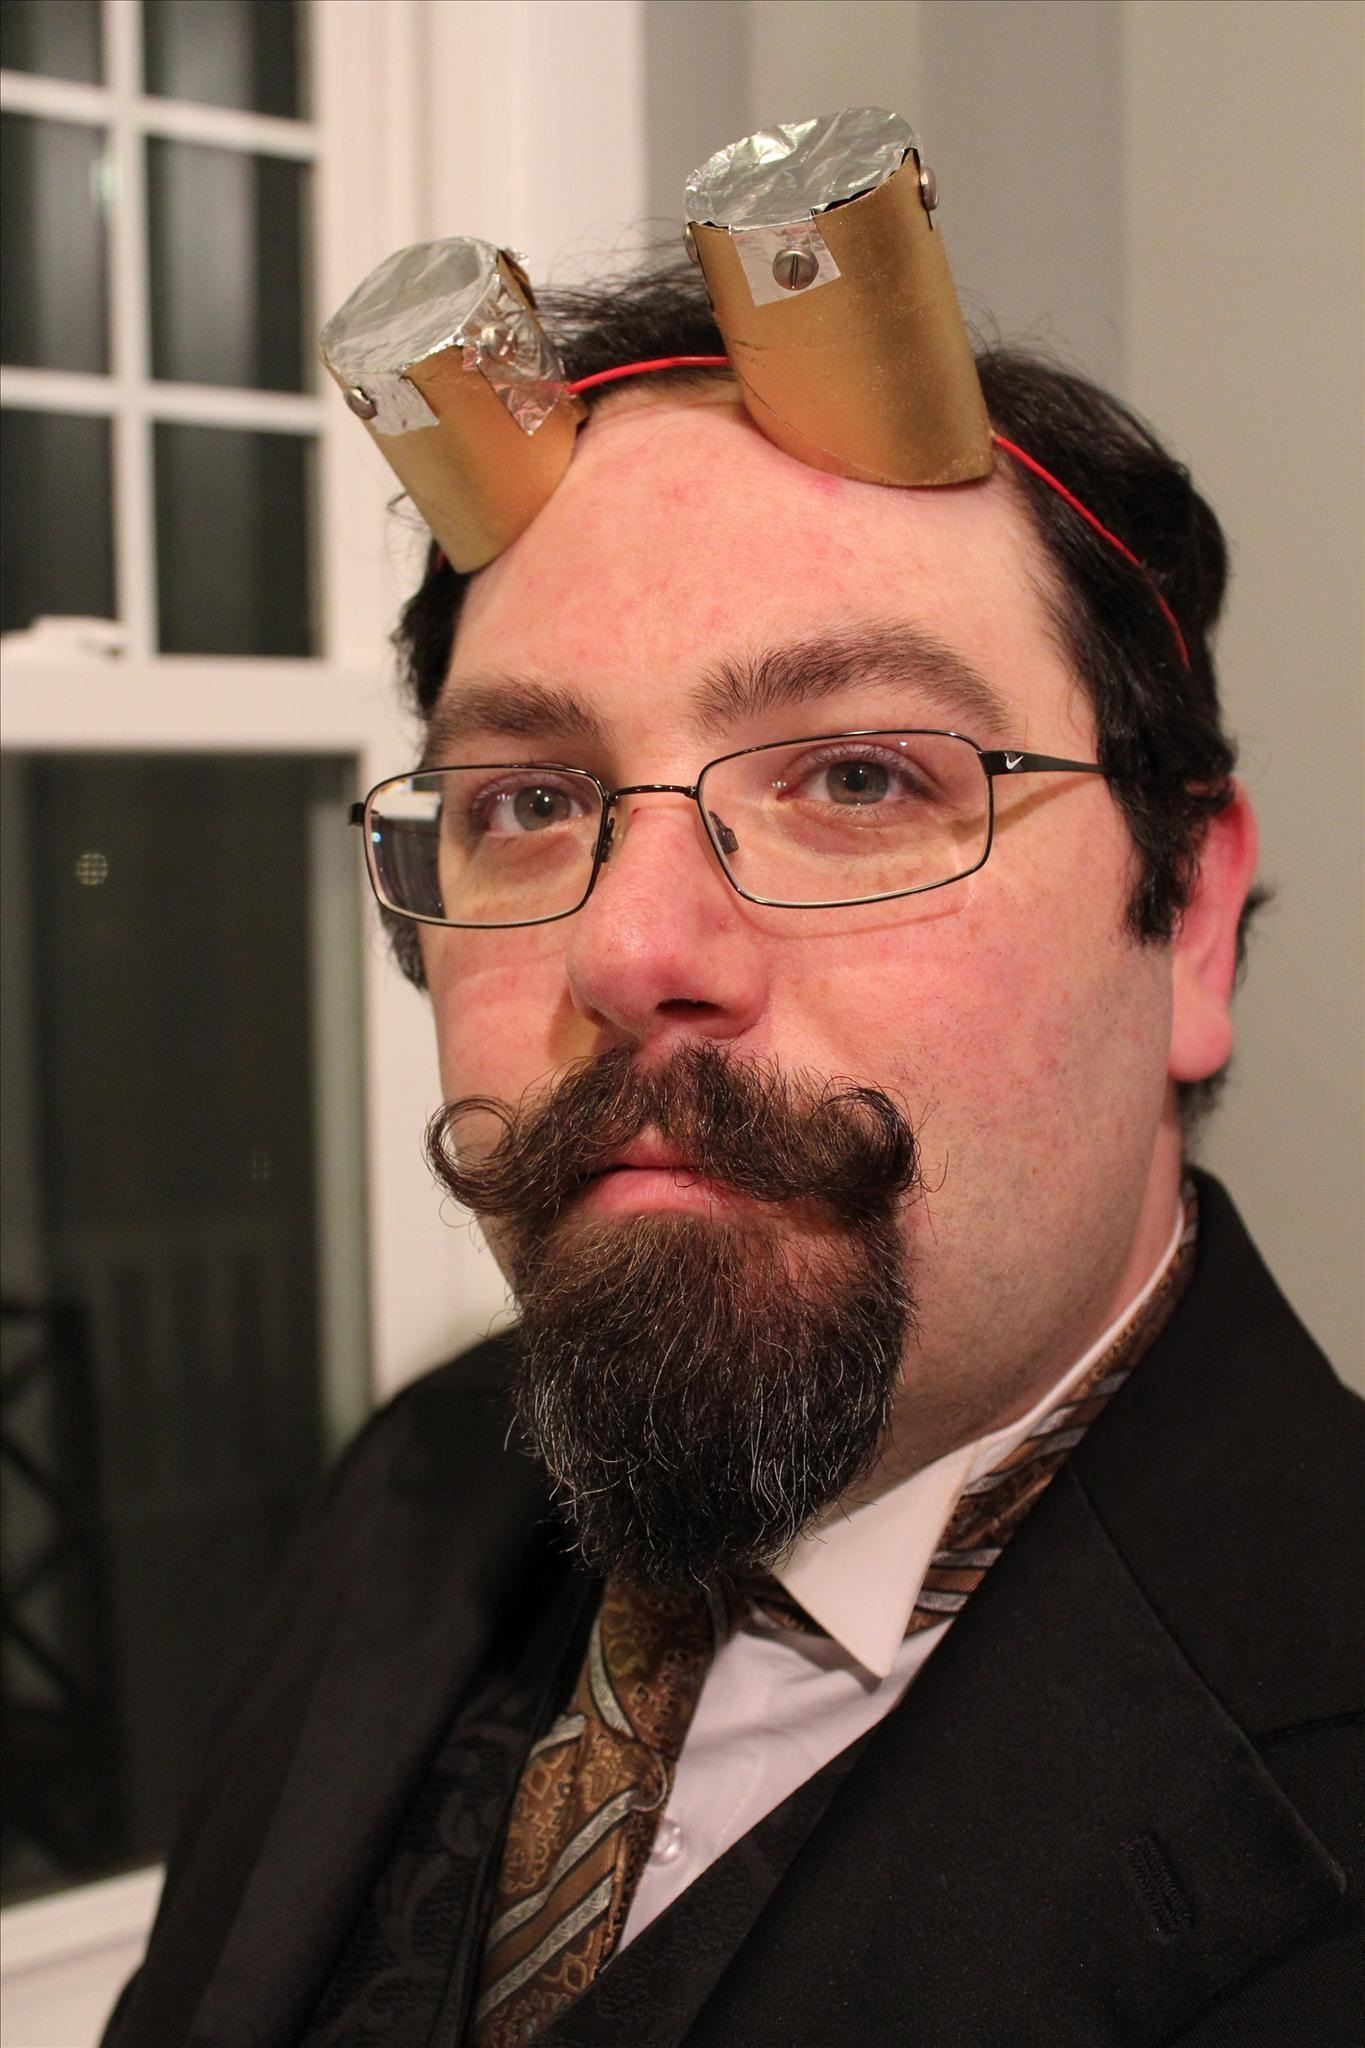 Steampunk Yourself for Halloween in 10 Minutes or Less